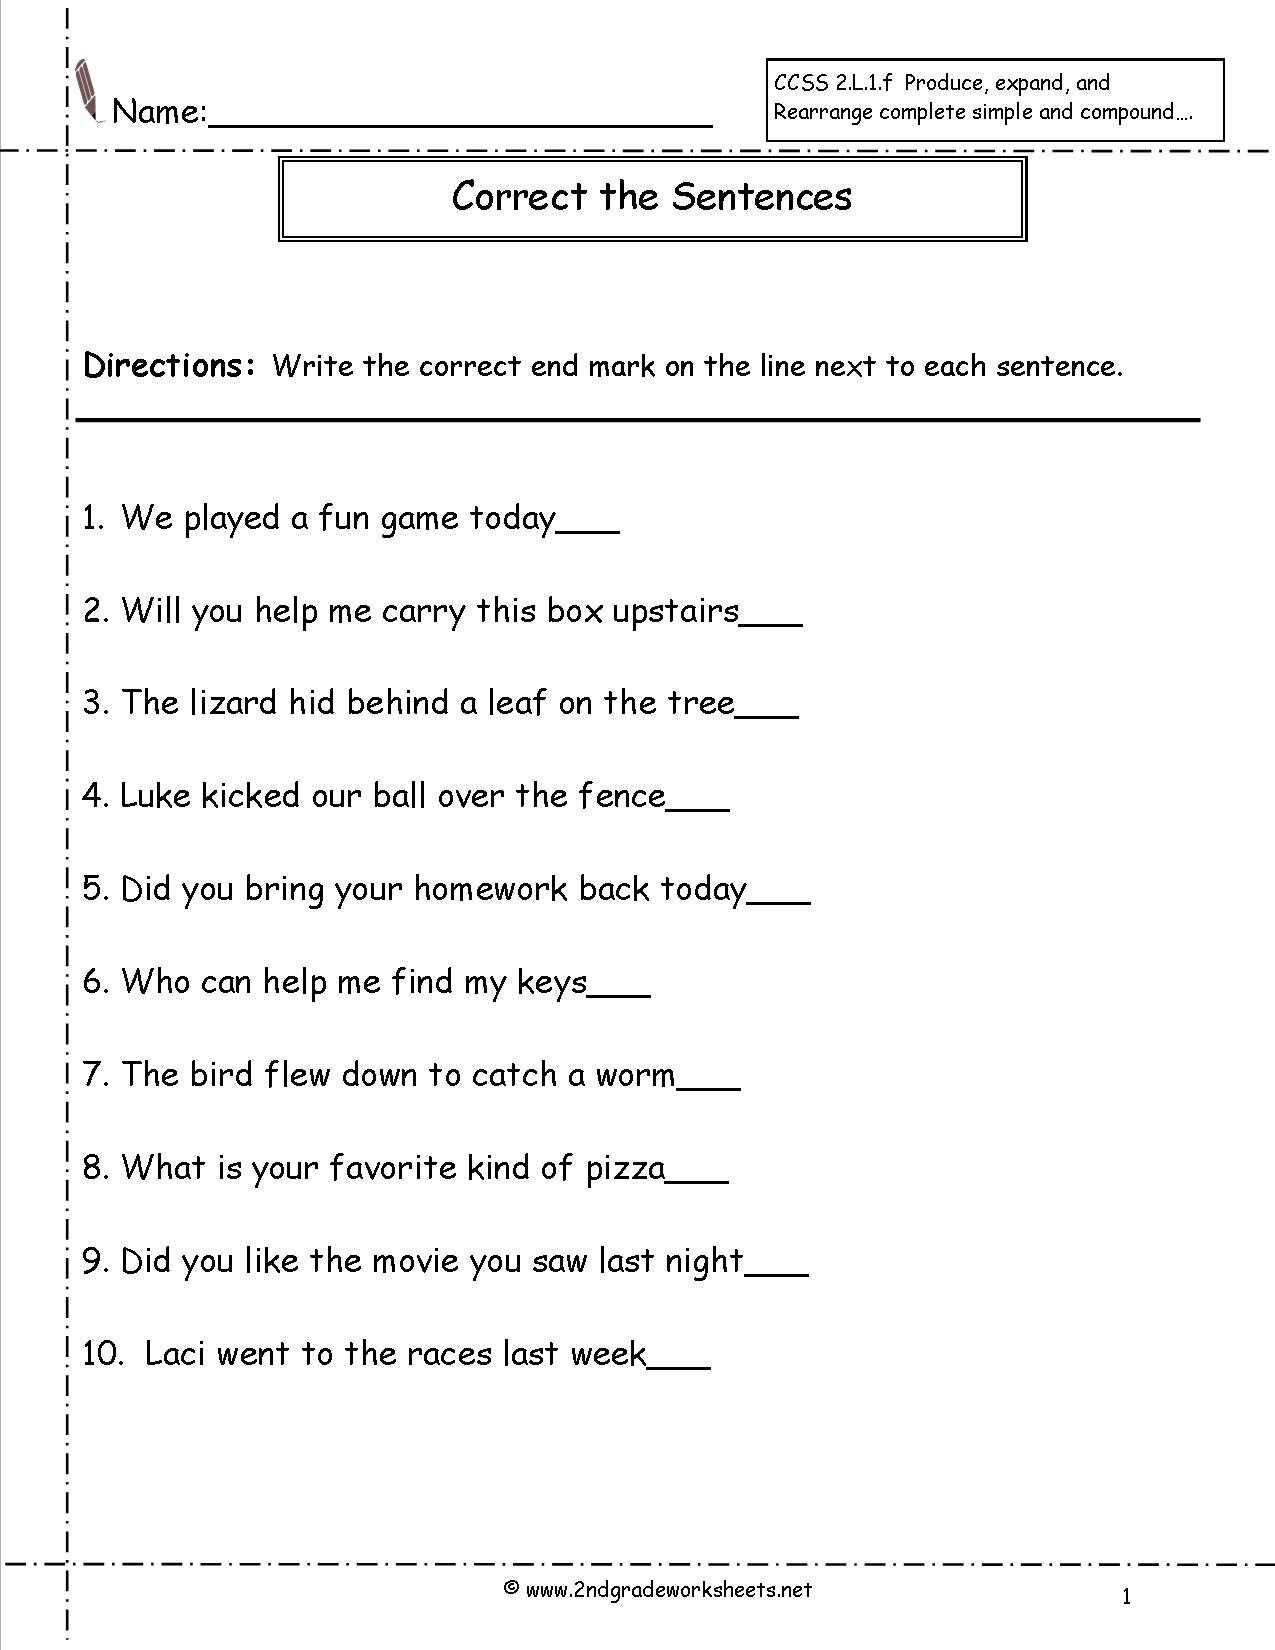 Topic Sentence Worksheets 3rd Grade Sentence Correction Worksheets 6th Grade